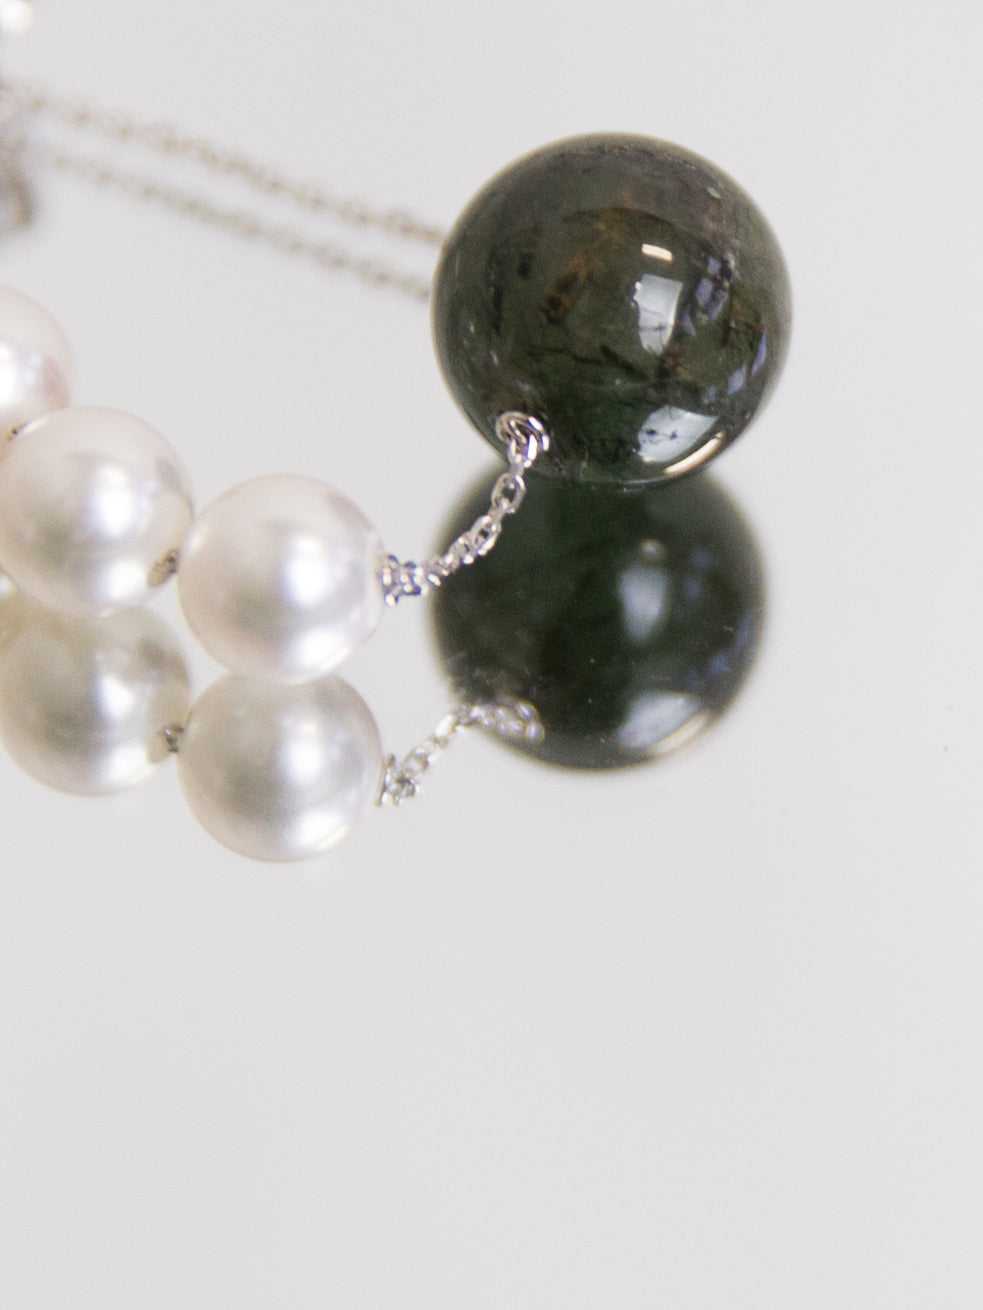 SPHERE Single Winter Earring with Green Rutilated Quartz - White Gold